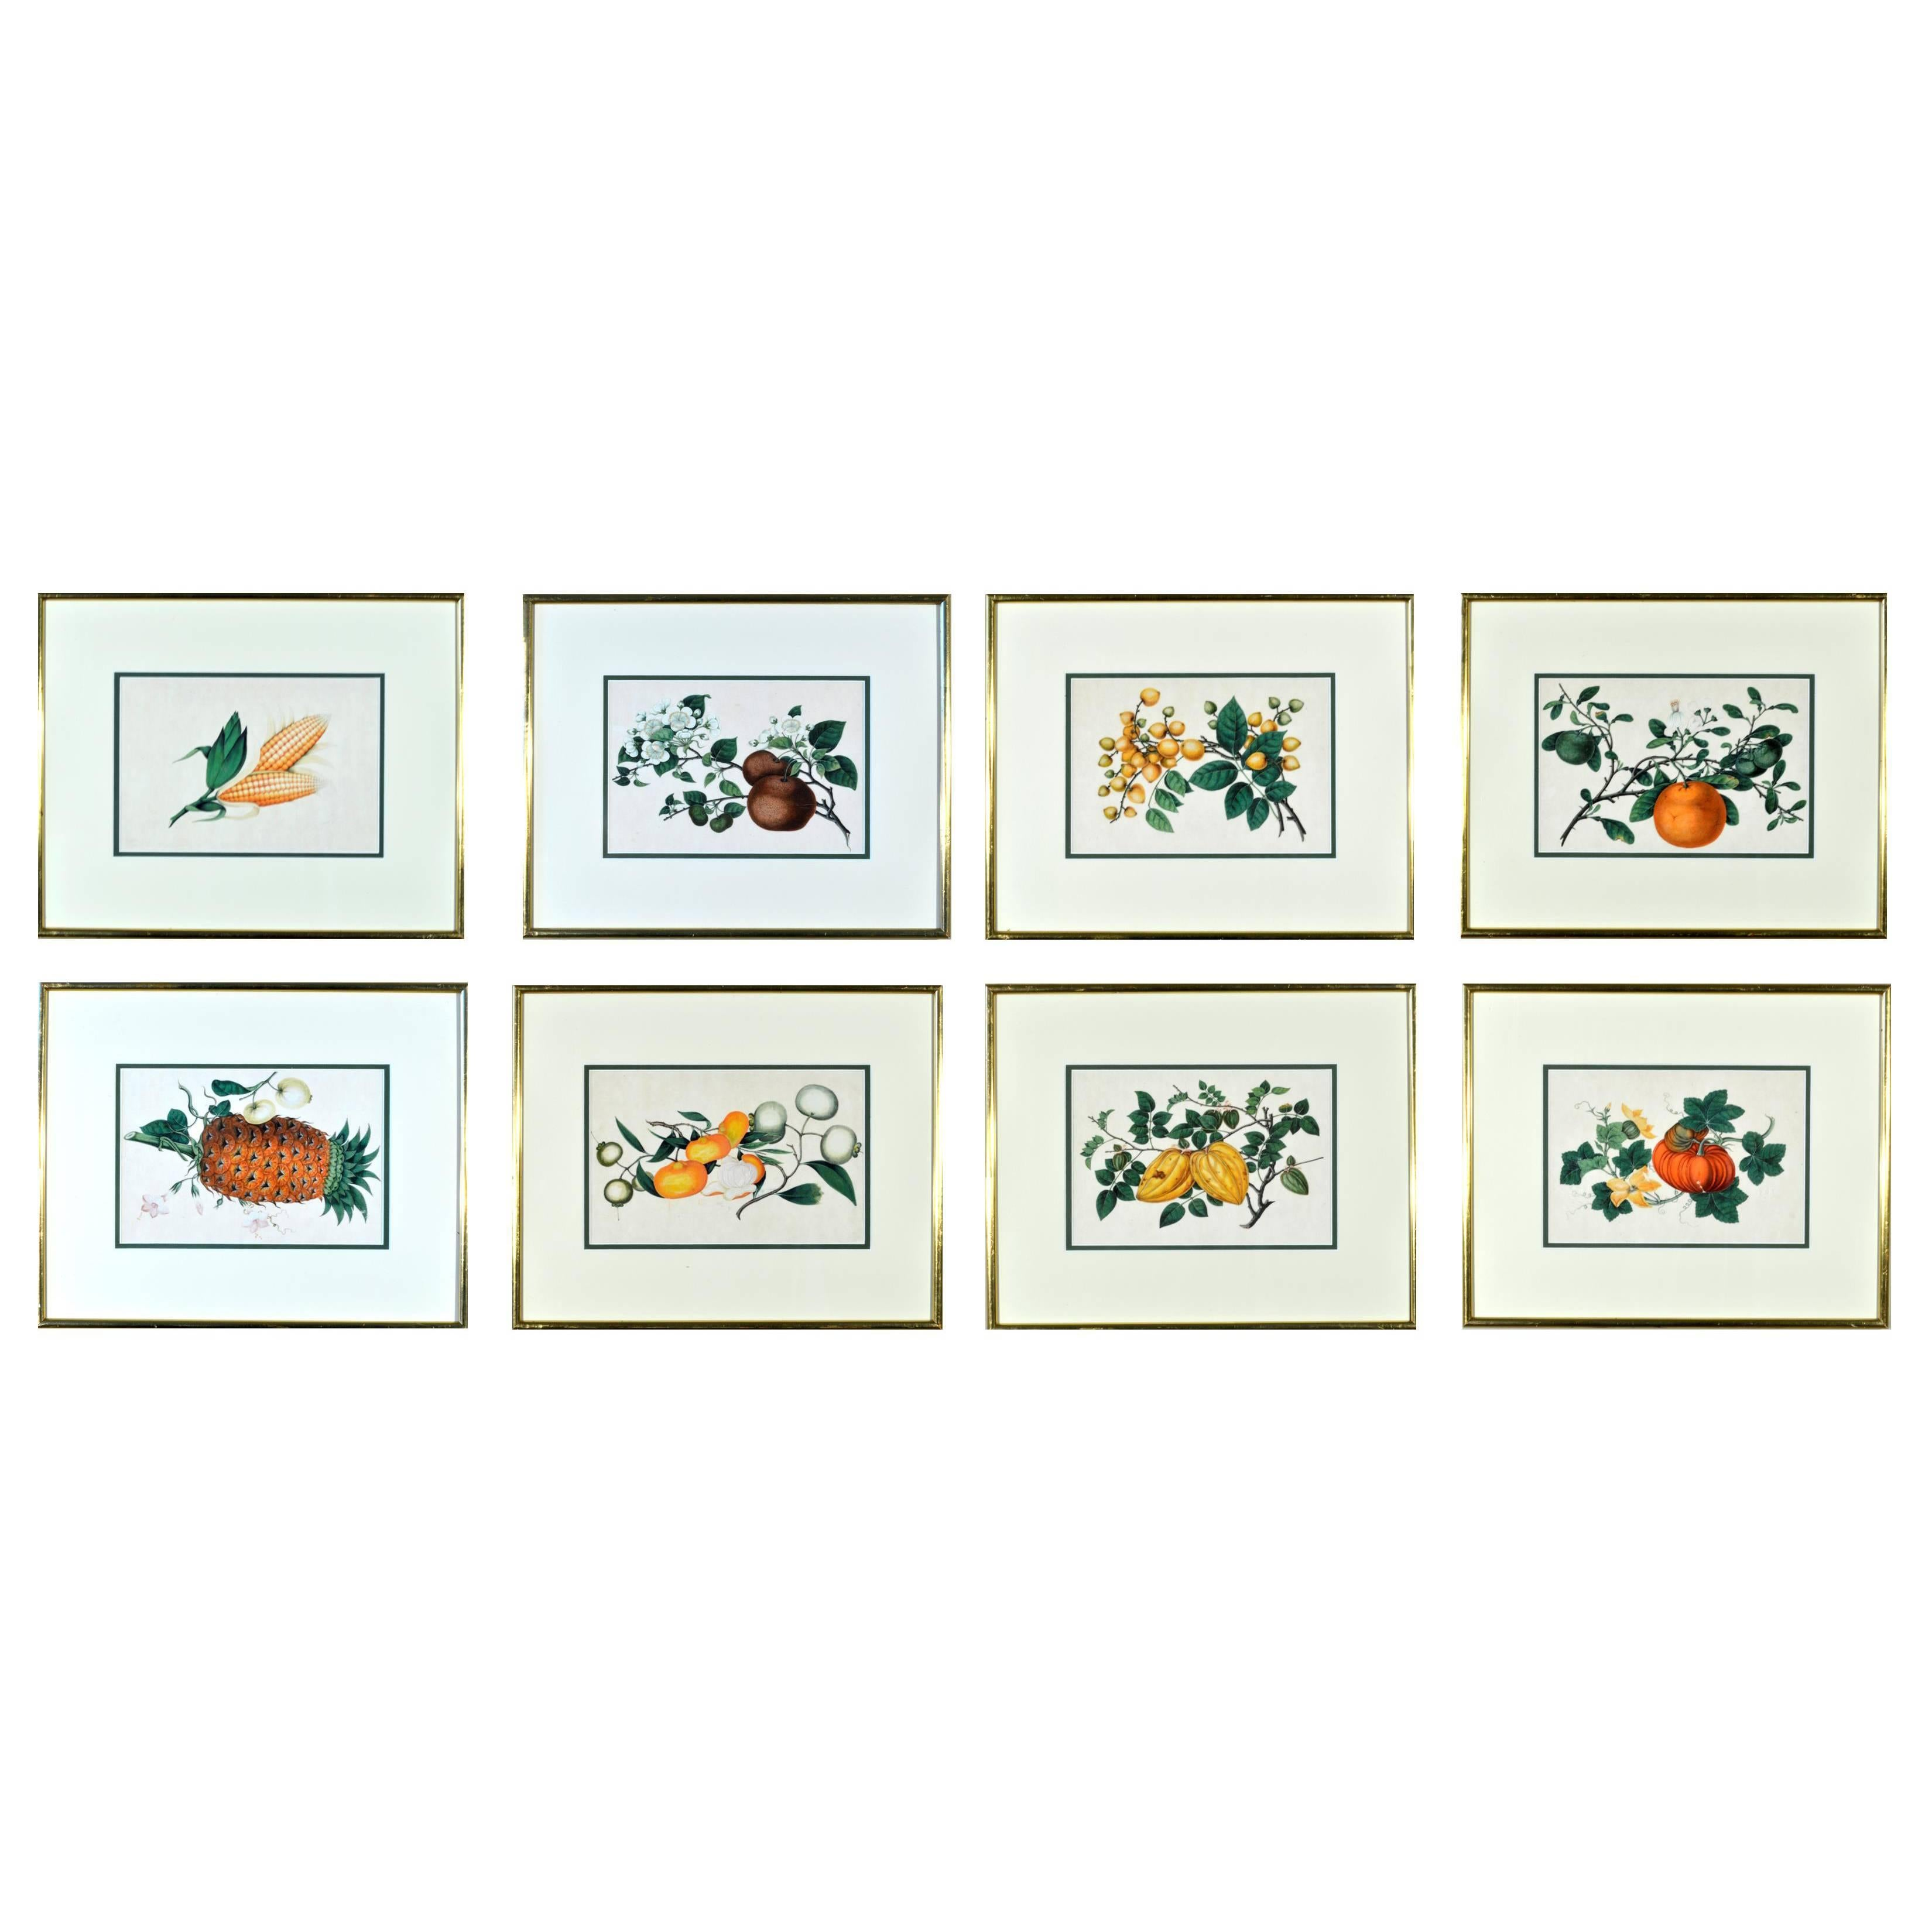 China trade watercolour paintings of vegetables set of six mid china trade watercolour paintings of vegetables set of six mid 19th century for sale at 1stdibs jeuxipadfo Image collections